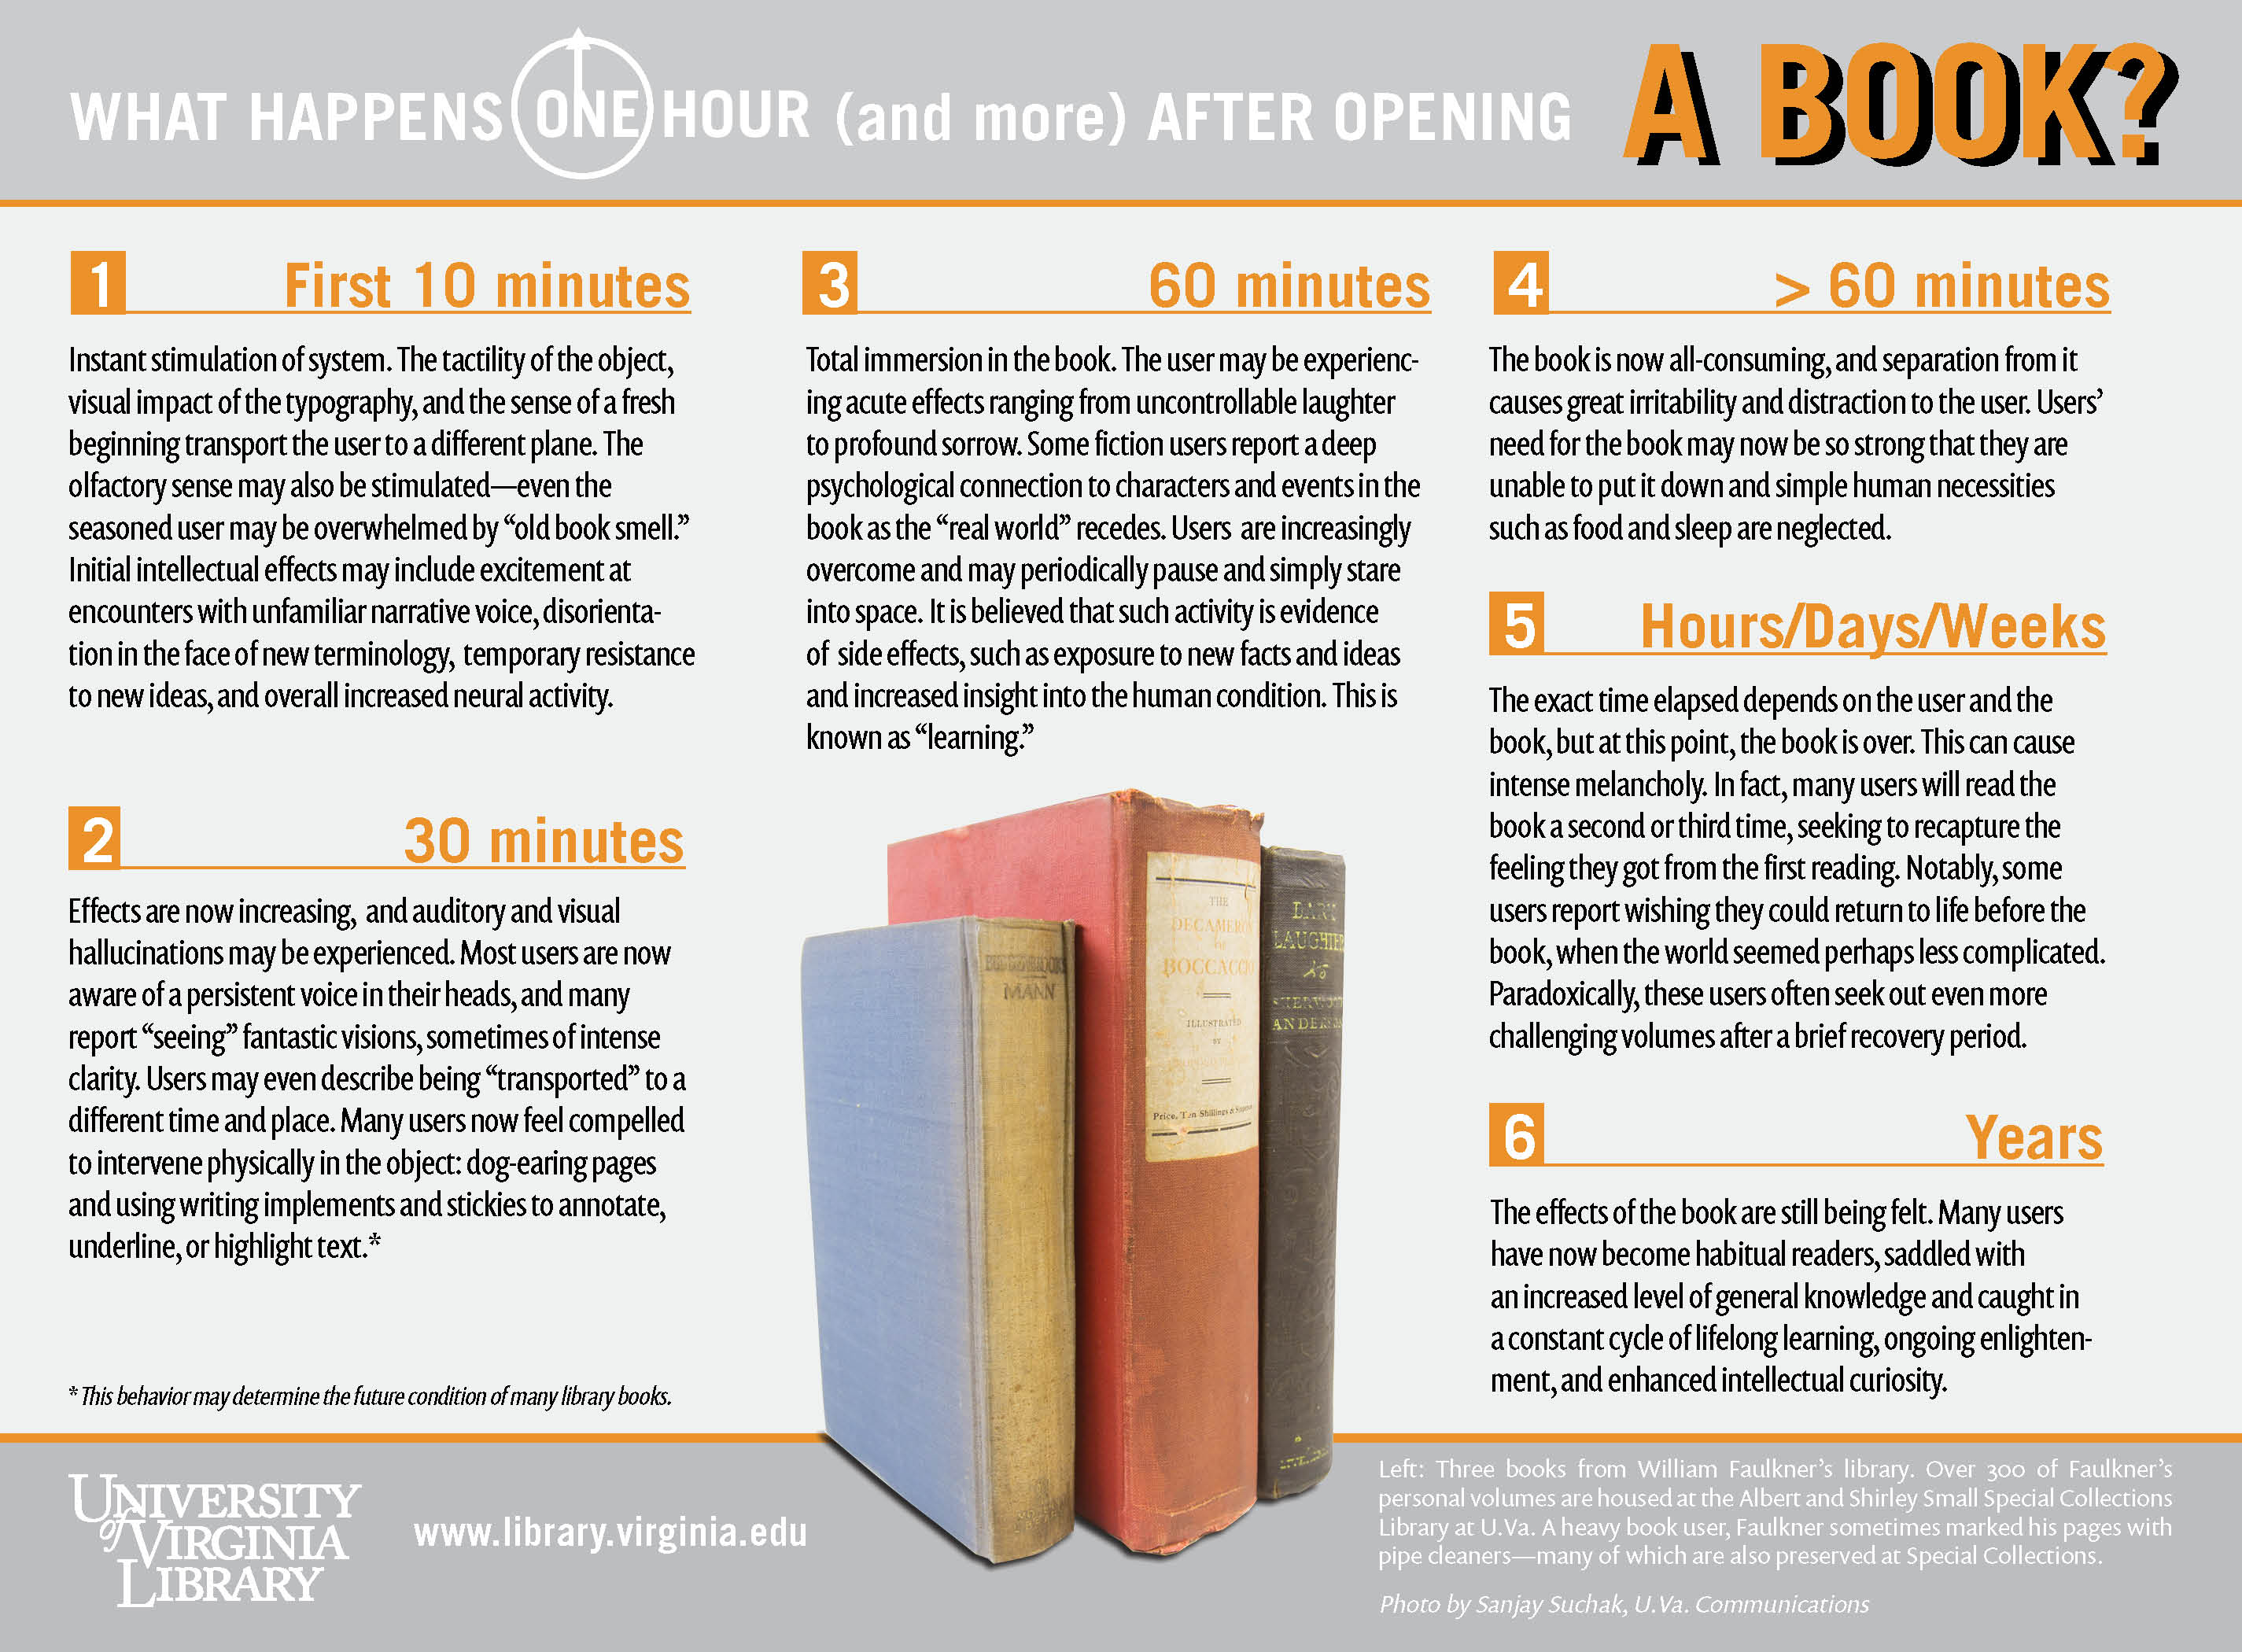 What Happens After Opening A Book?